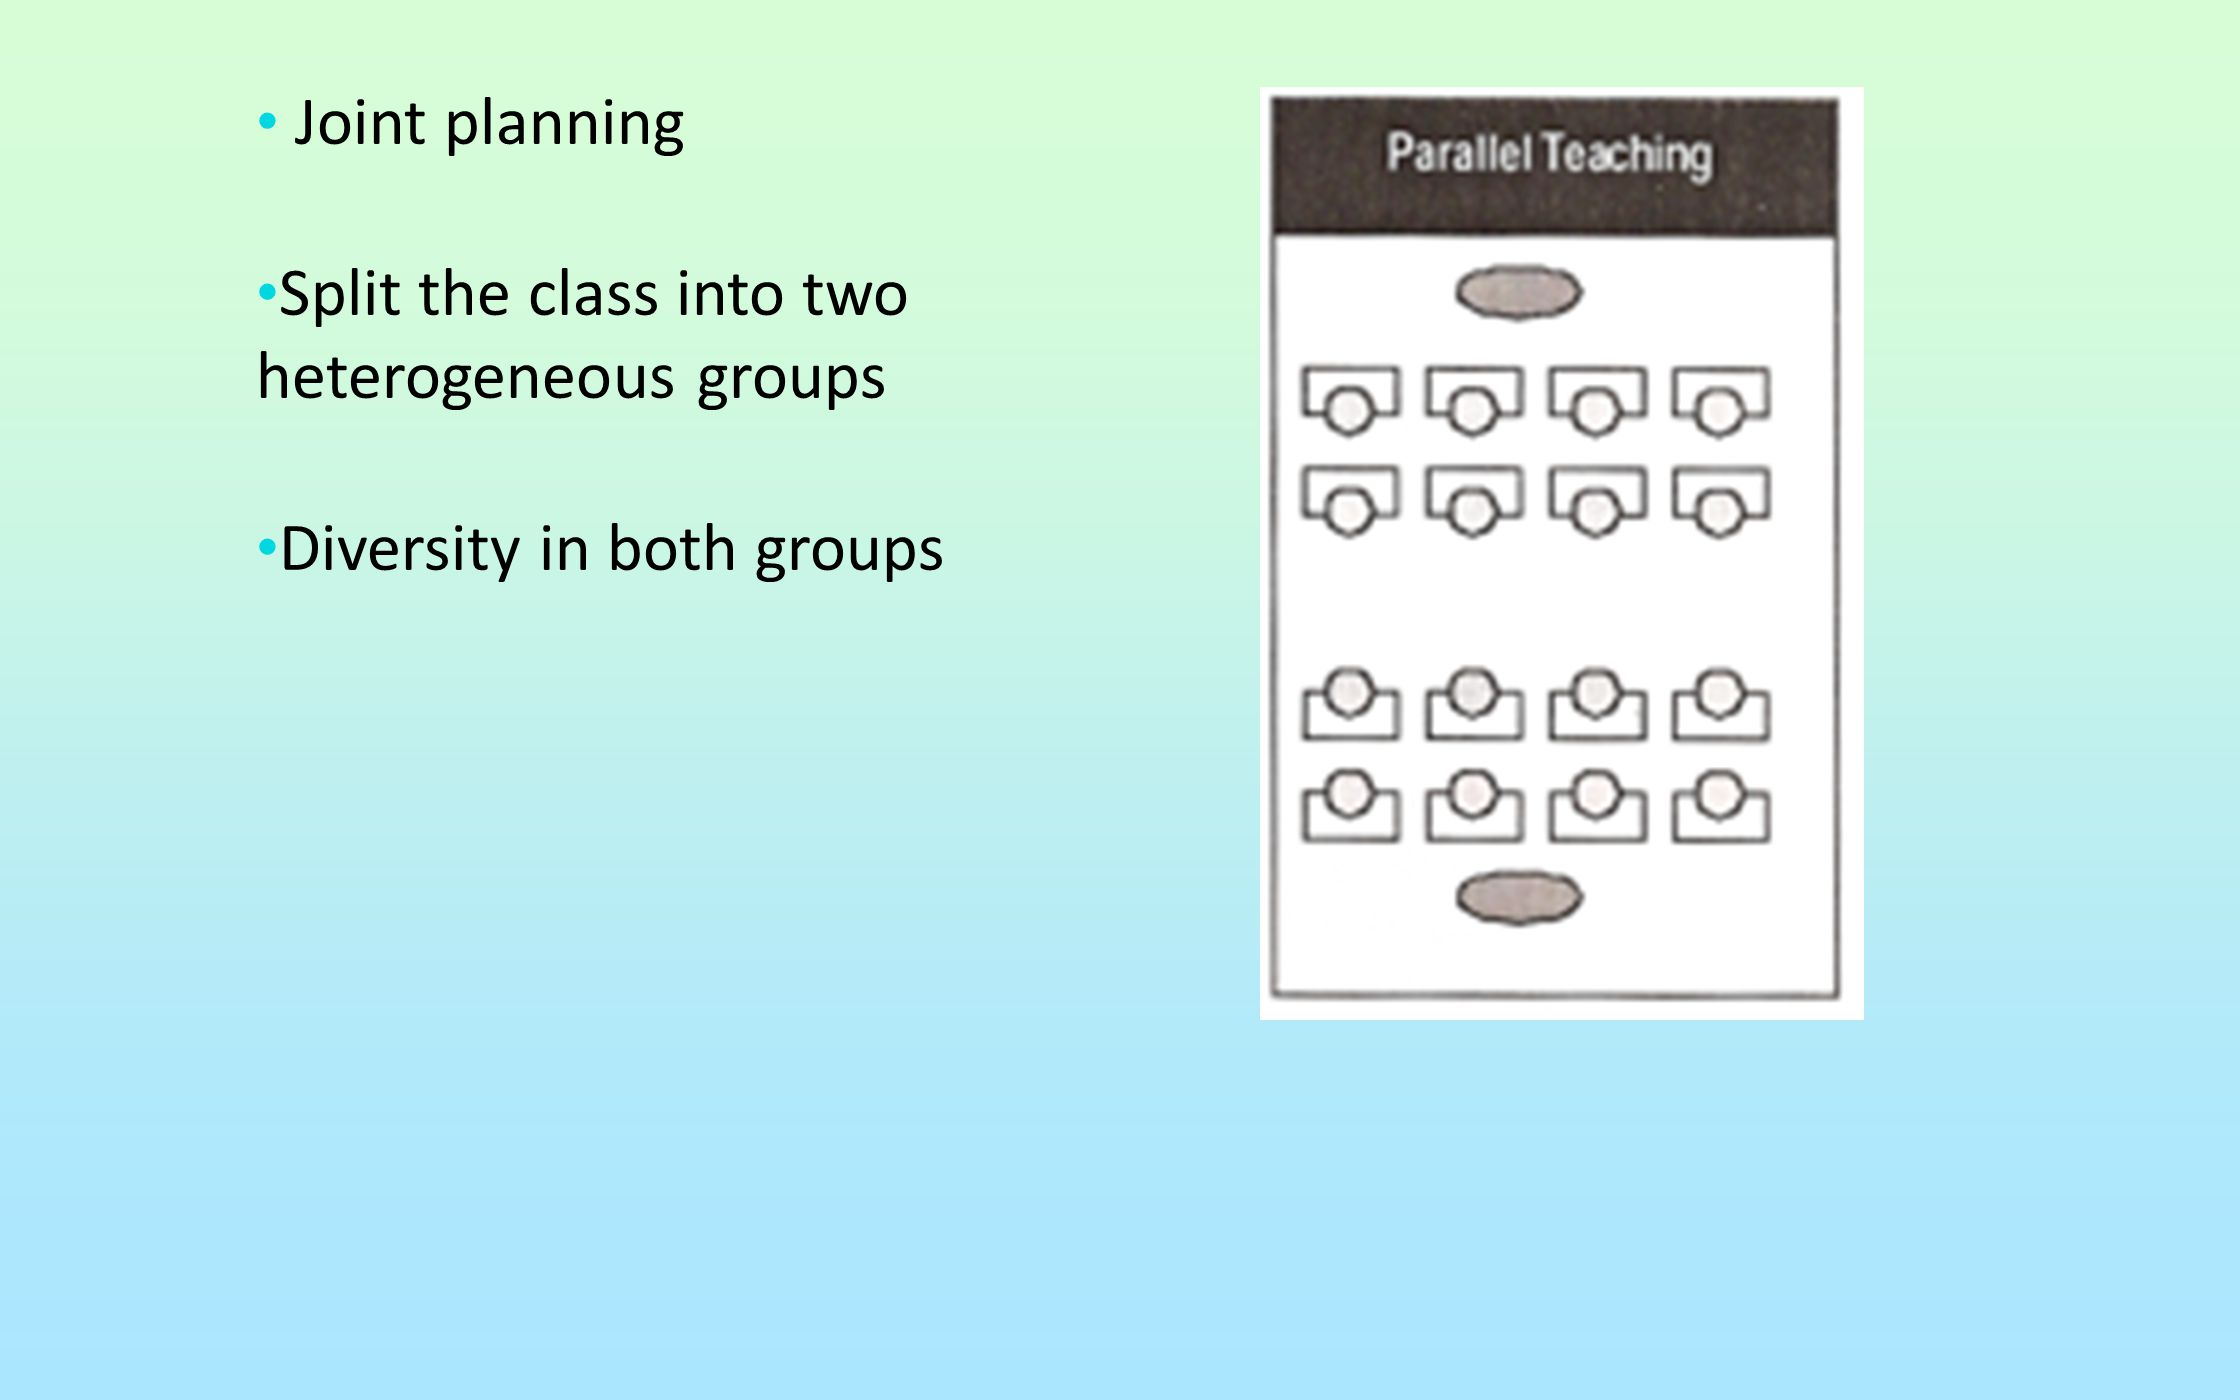 Split the class into two heterogeneous groups